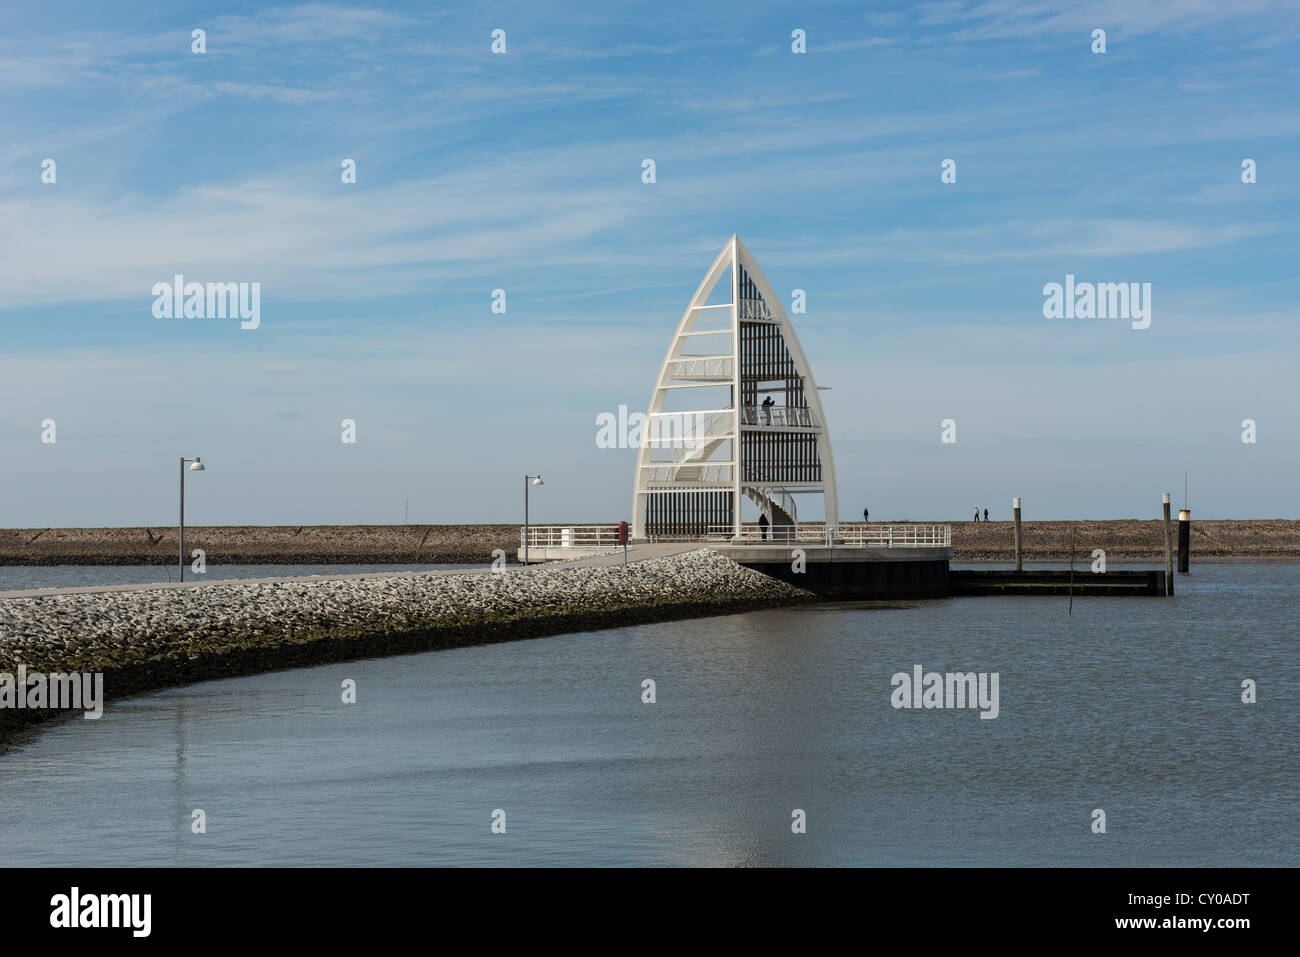 Observation tower at the harbour, landmark of the island of Juist - Toewerland, magic land, Lower Saxony Wadden - Stock Image